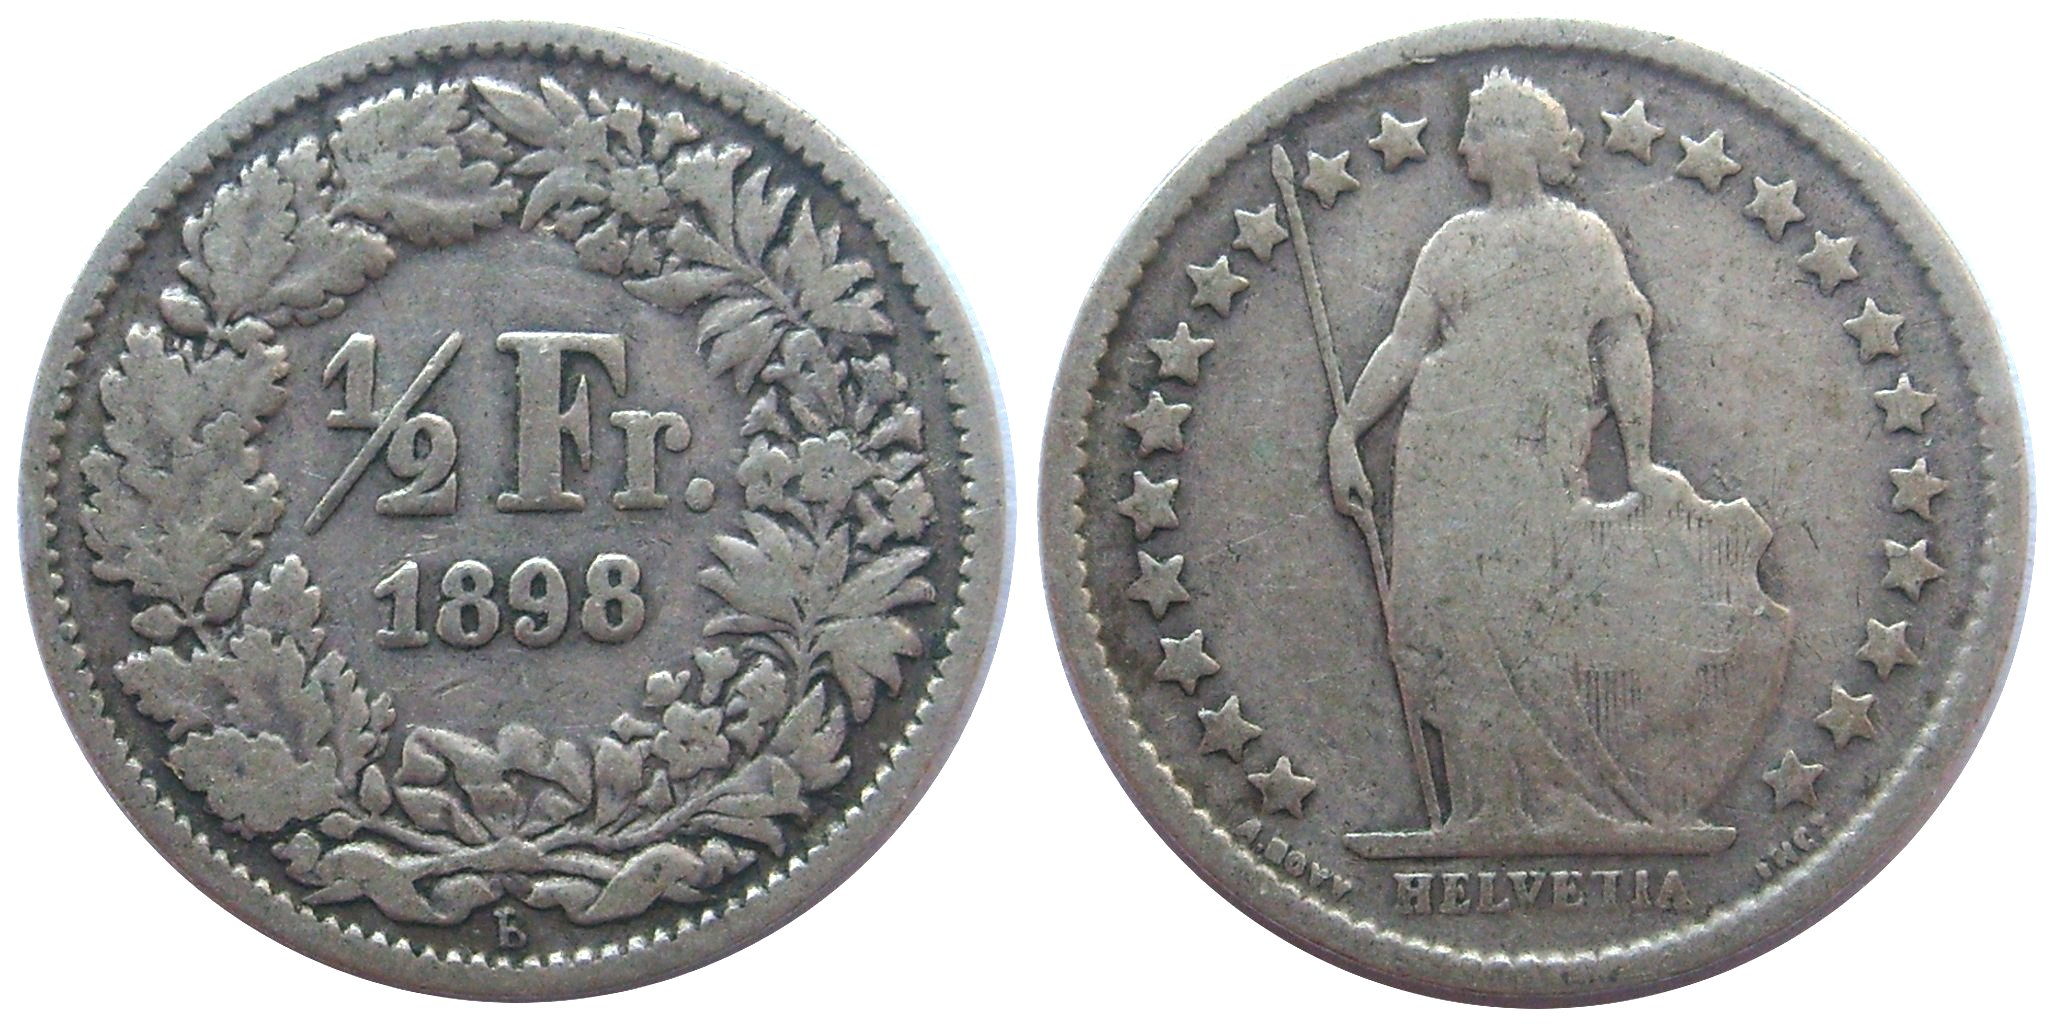 Swiss francDescription 50cts 1898 (Swiss franc).jpg